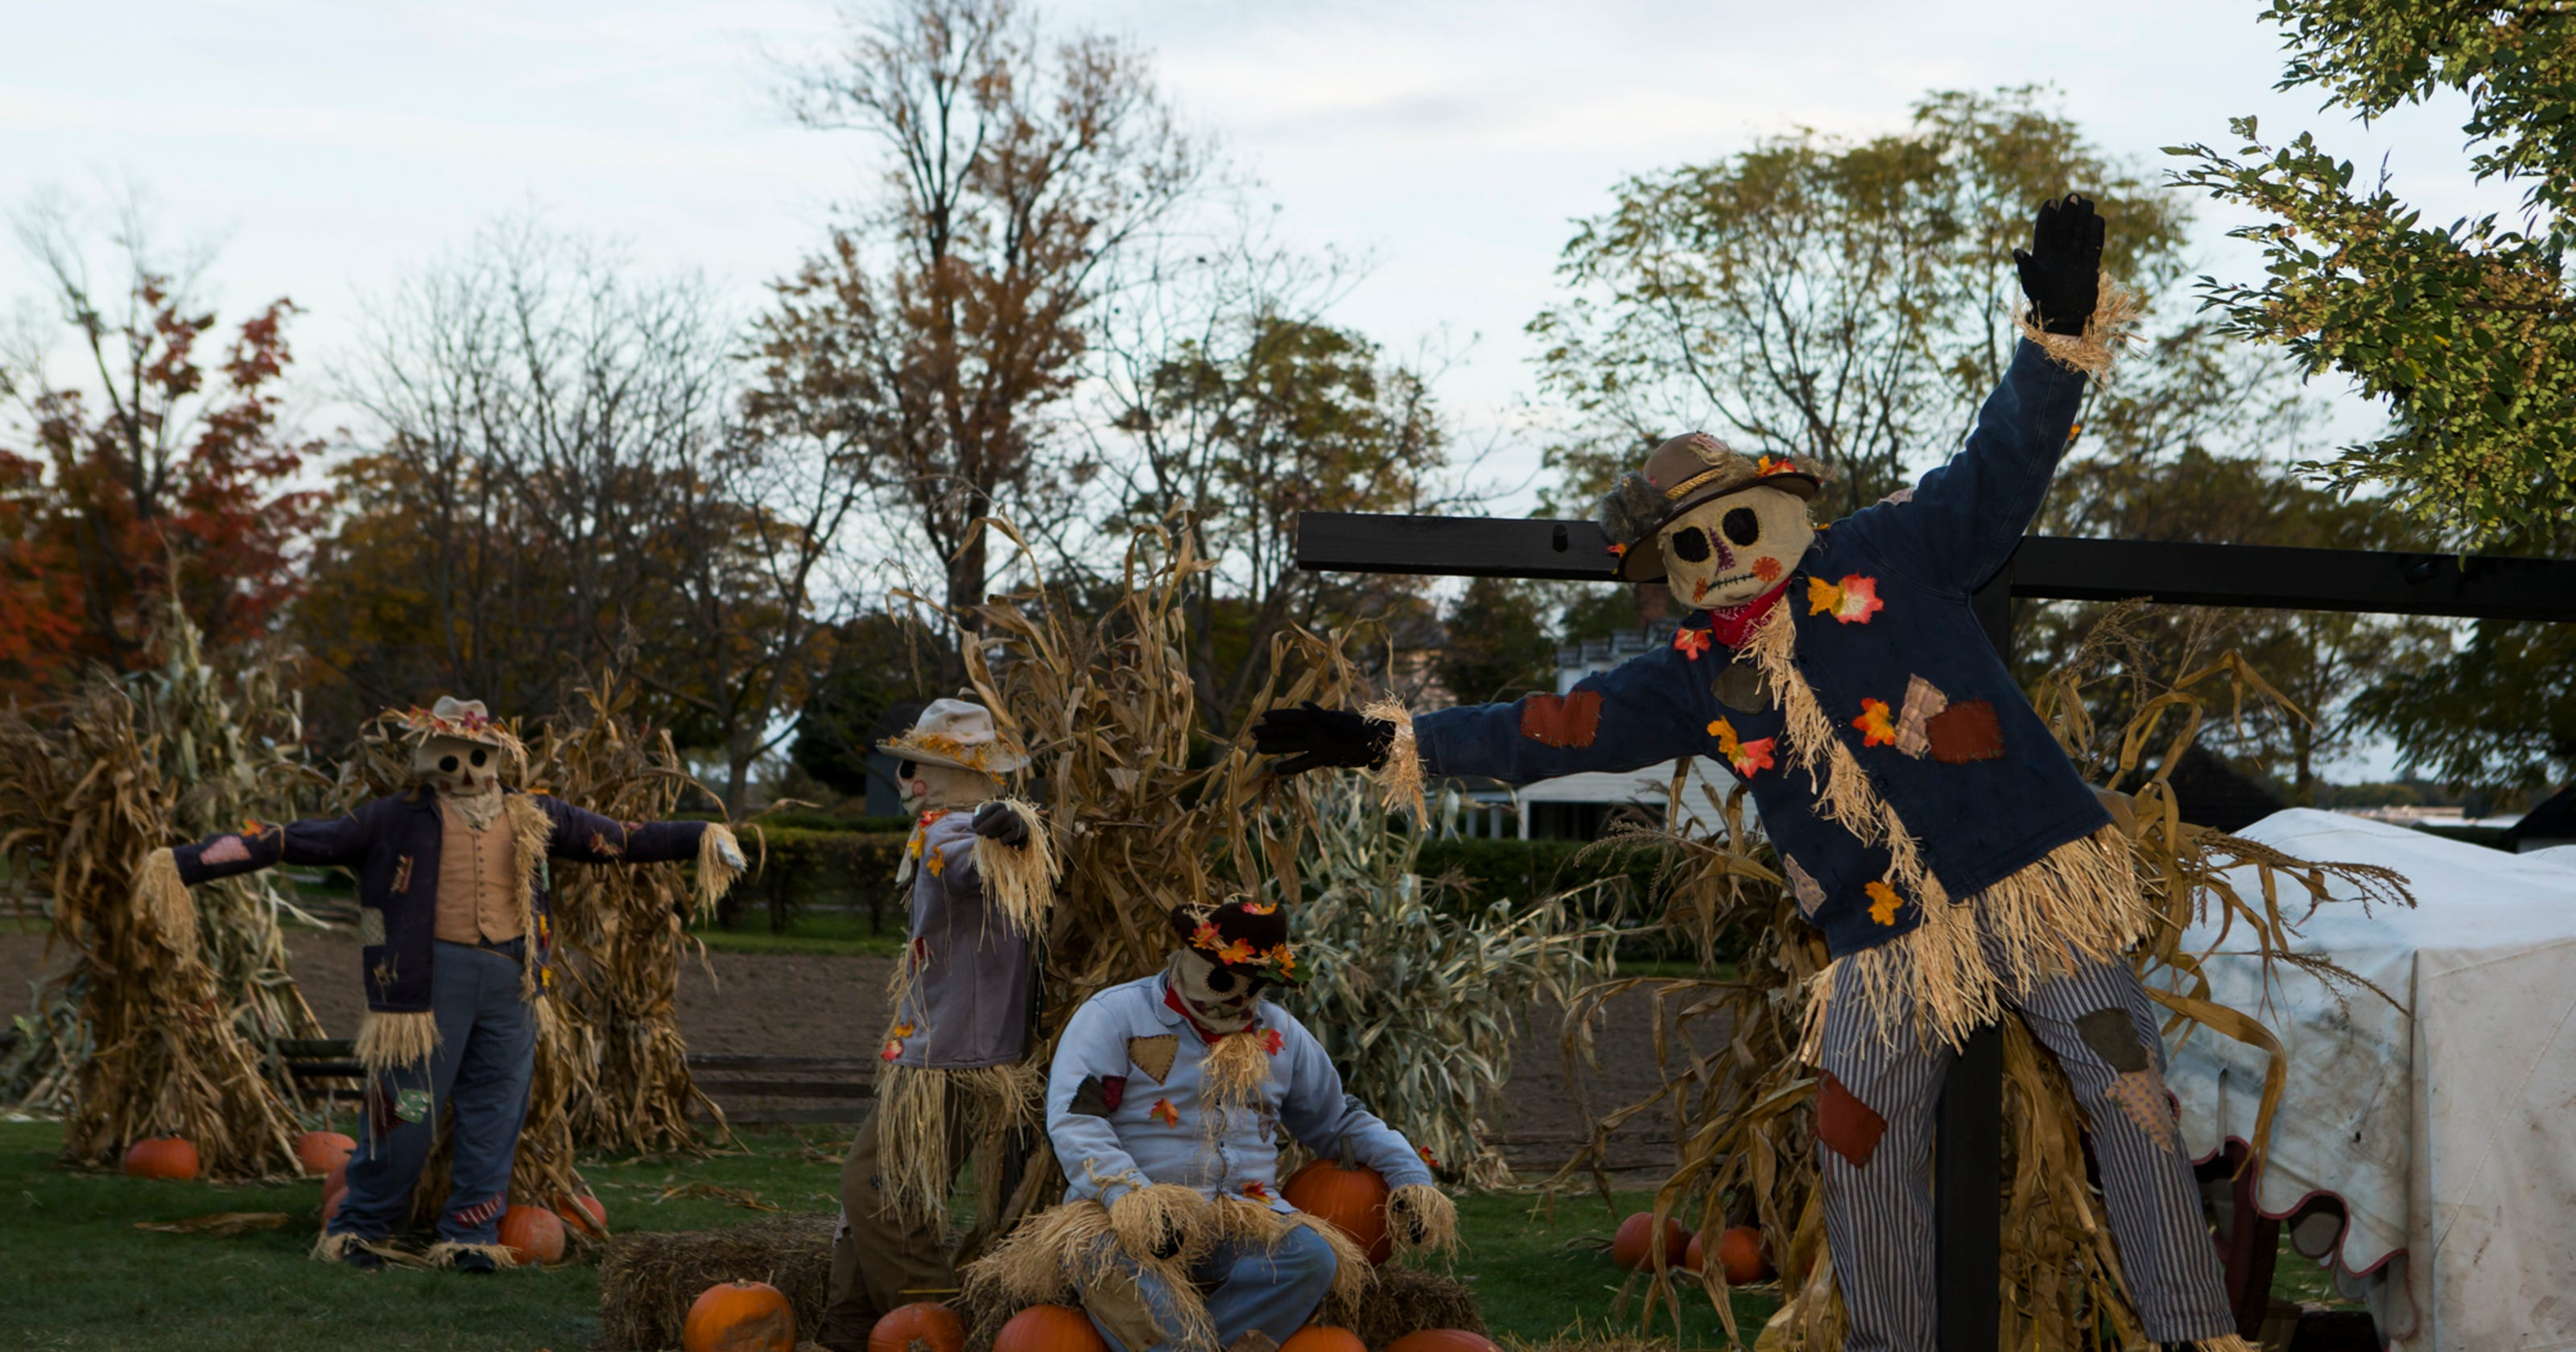 10 things to do in michigan in october